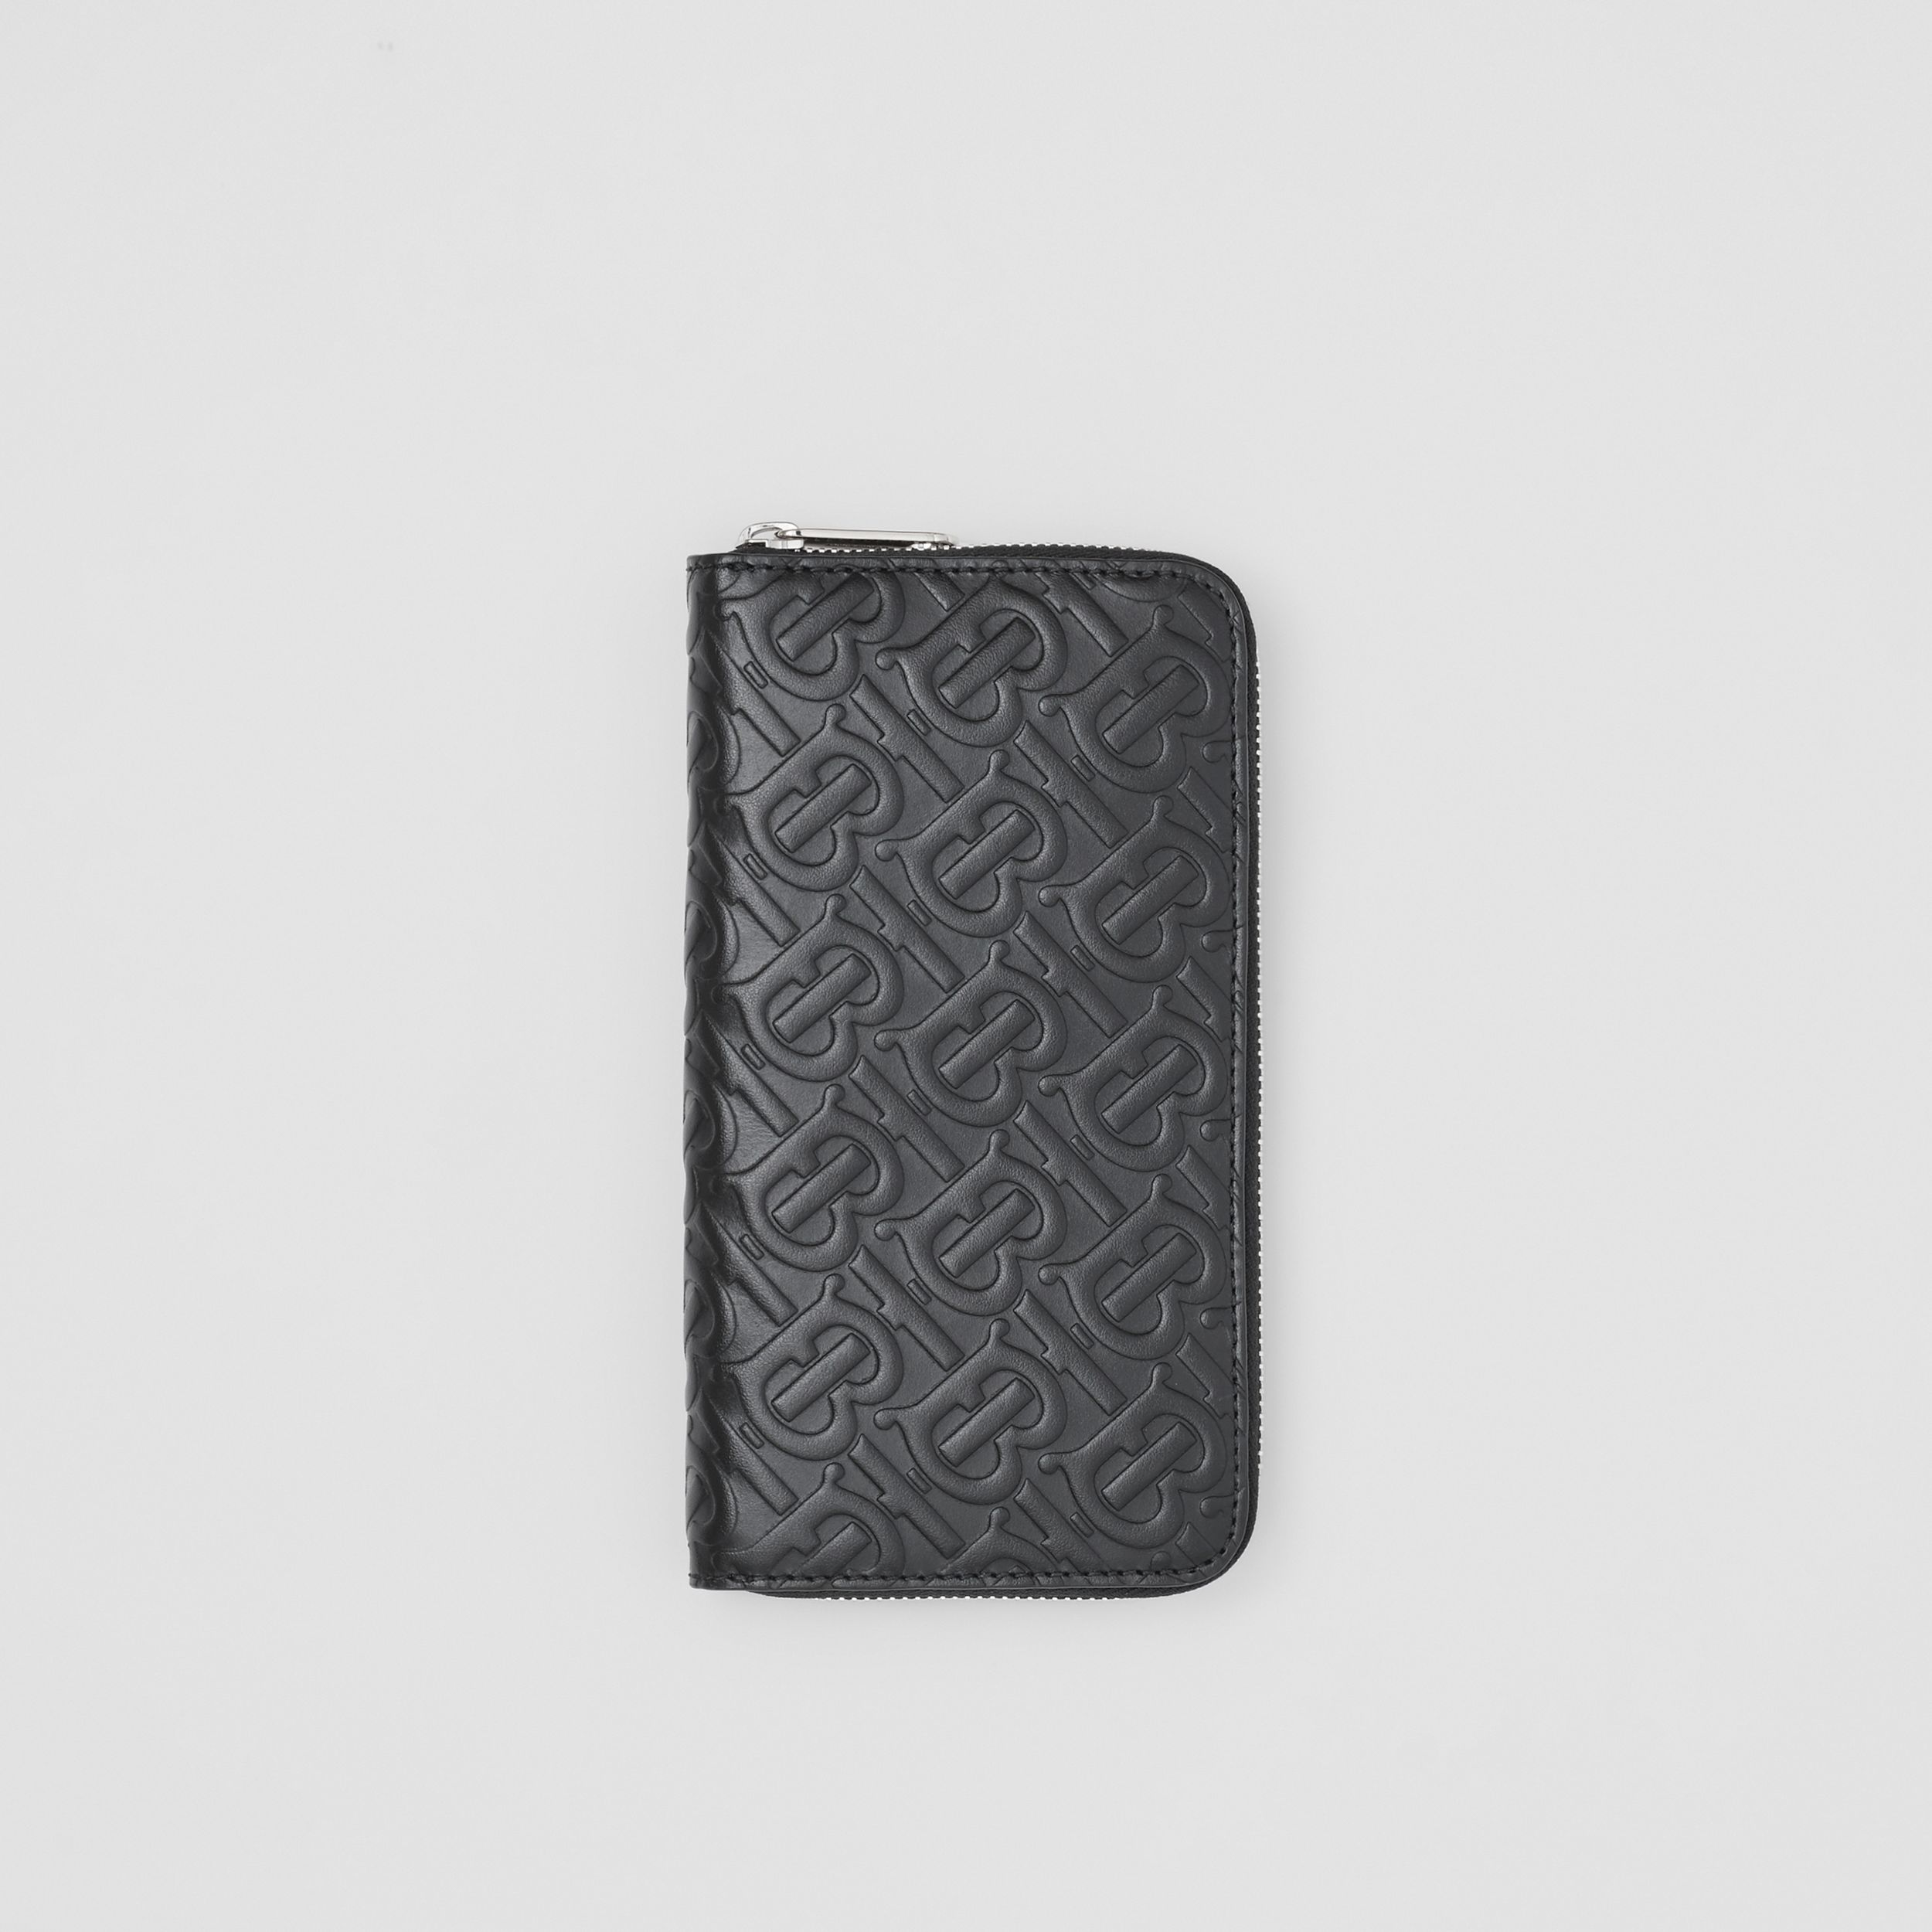 Monogram Leather Ziparound Wallet in Black - Men | Burberry - 1